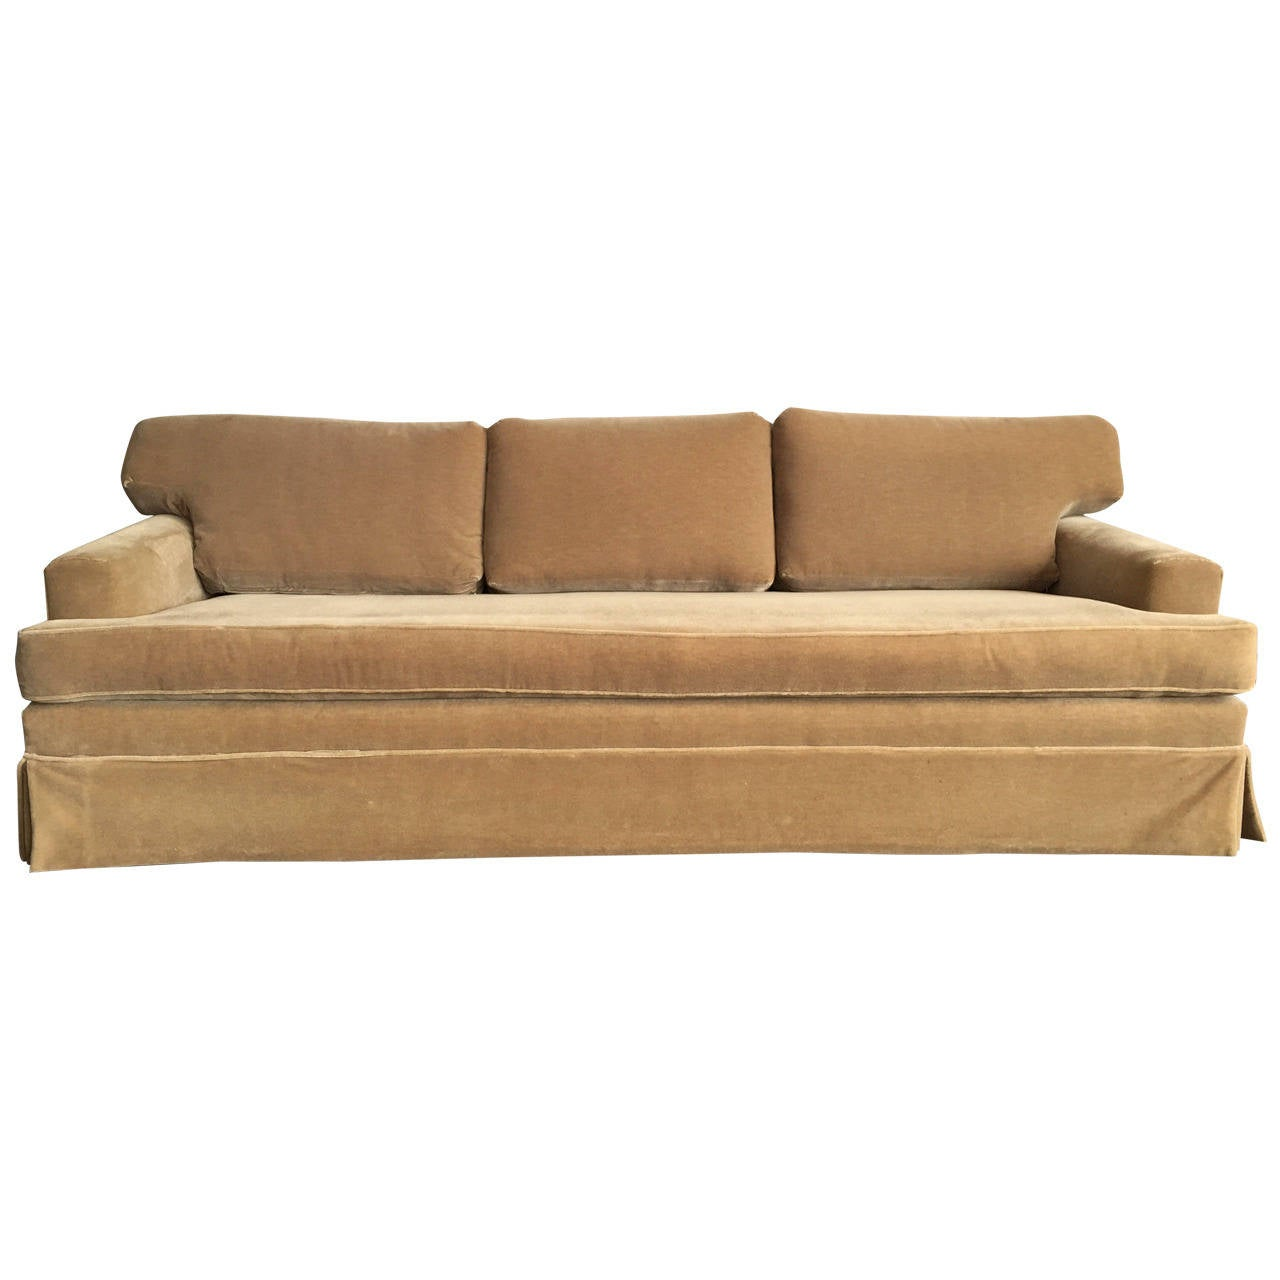 extra long classic jmf style mohair sofa for sale at 1stdibs